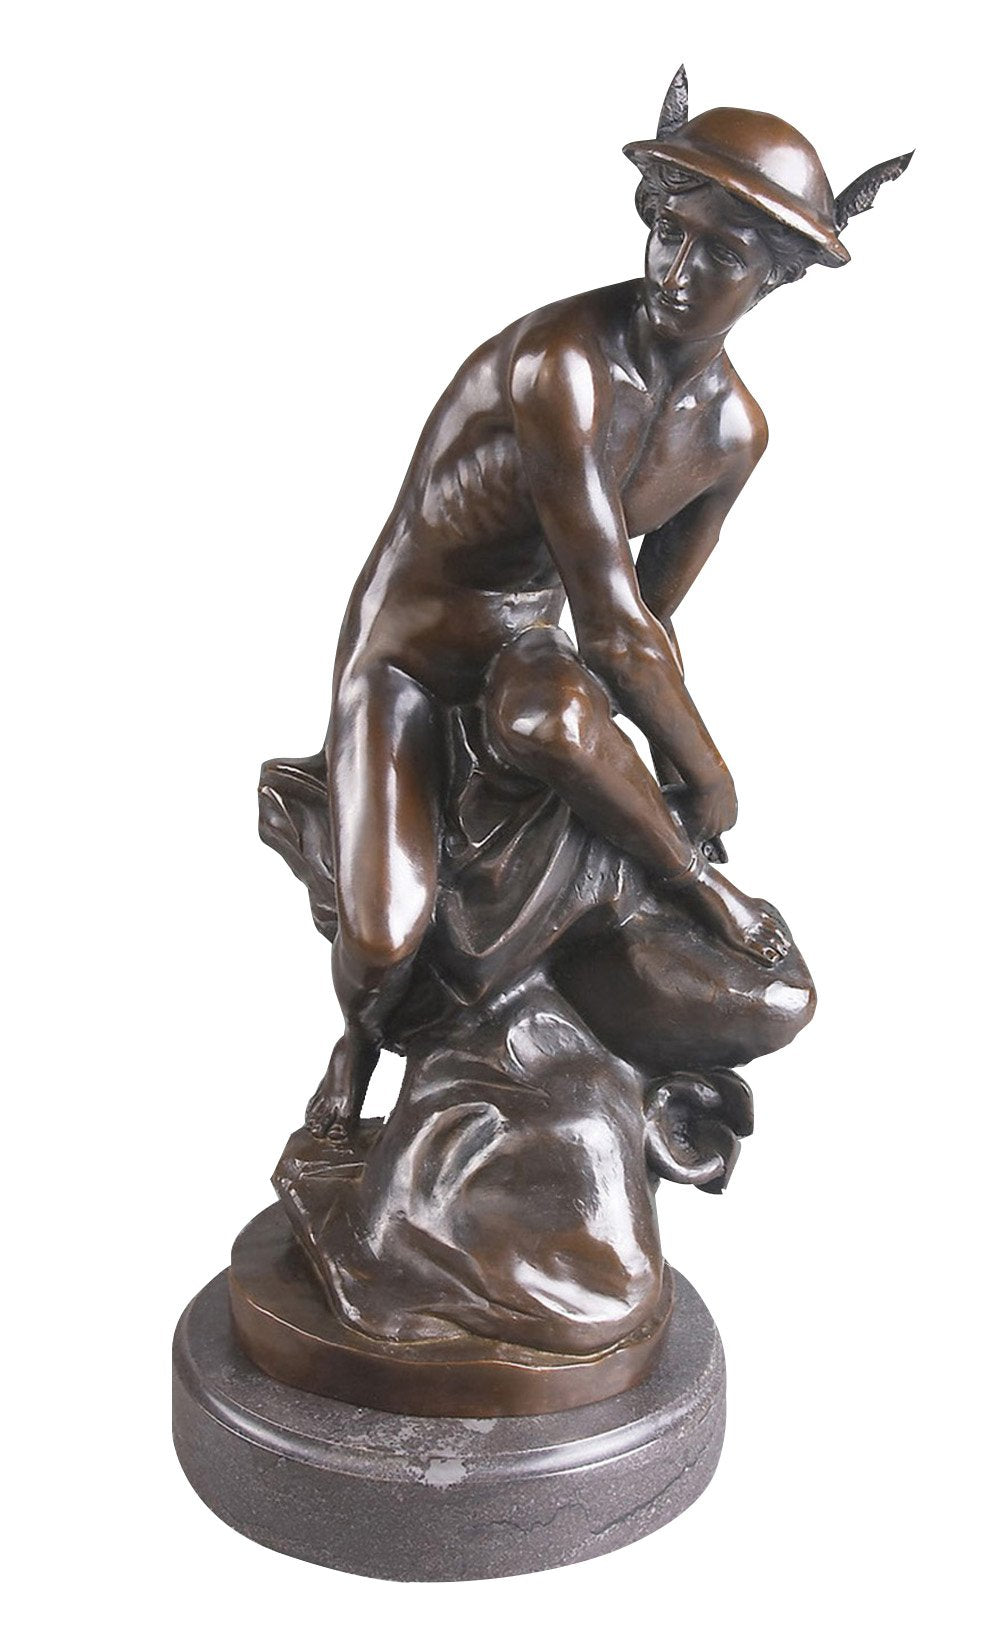 TPY-100 bronze sculpture